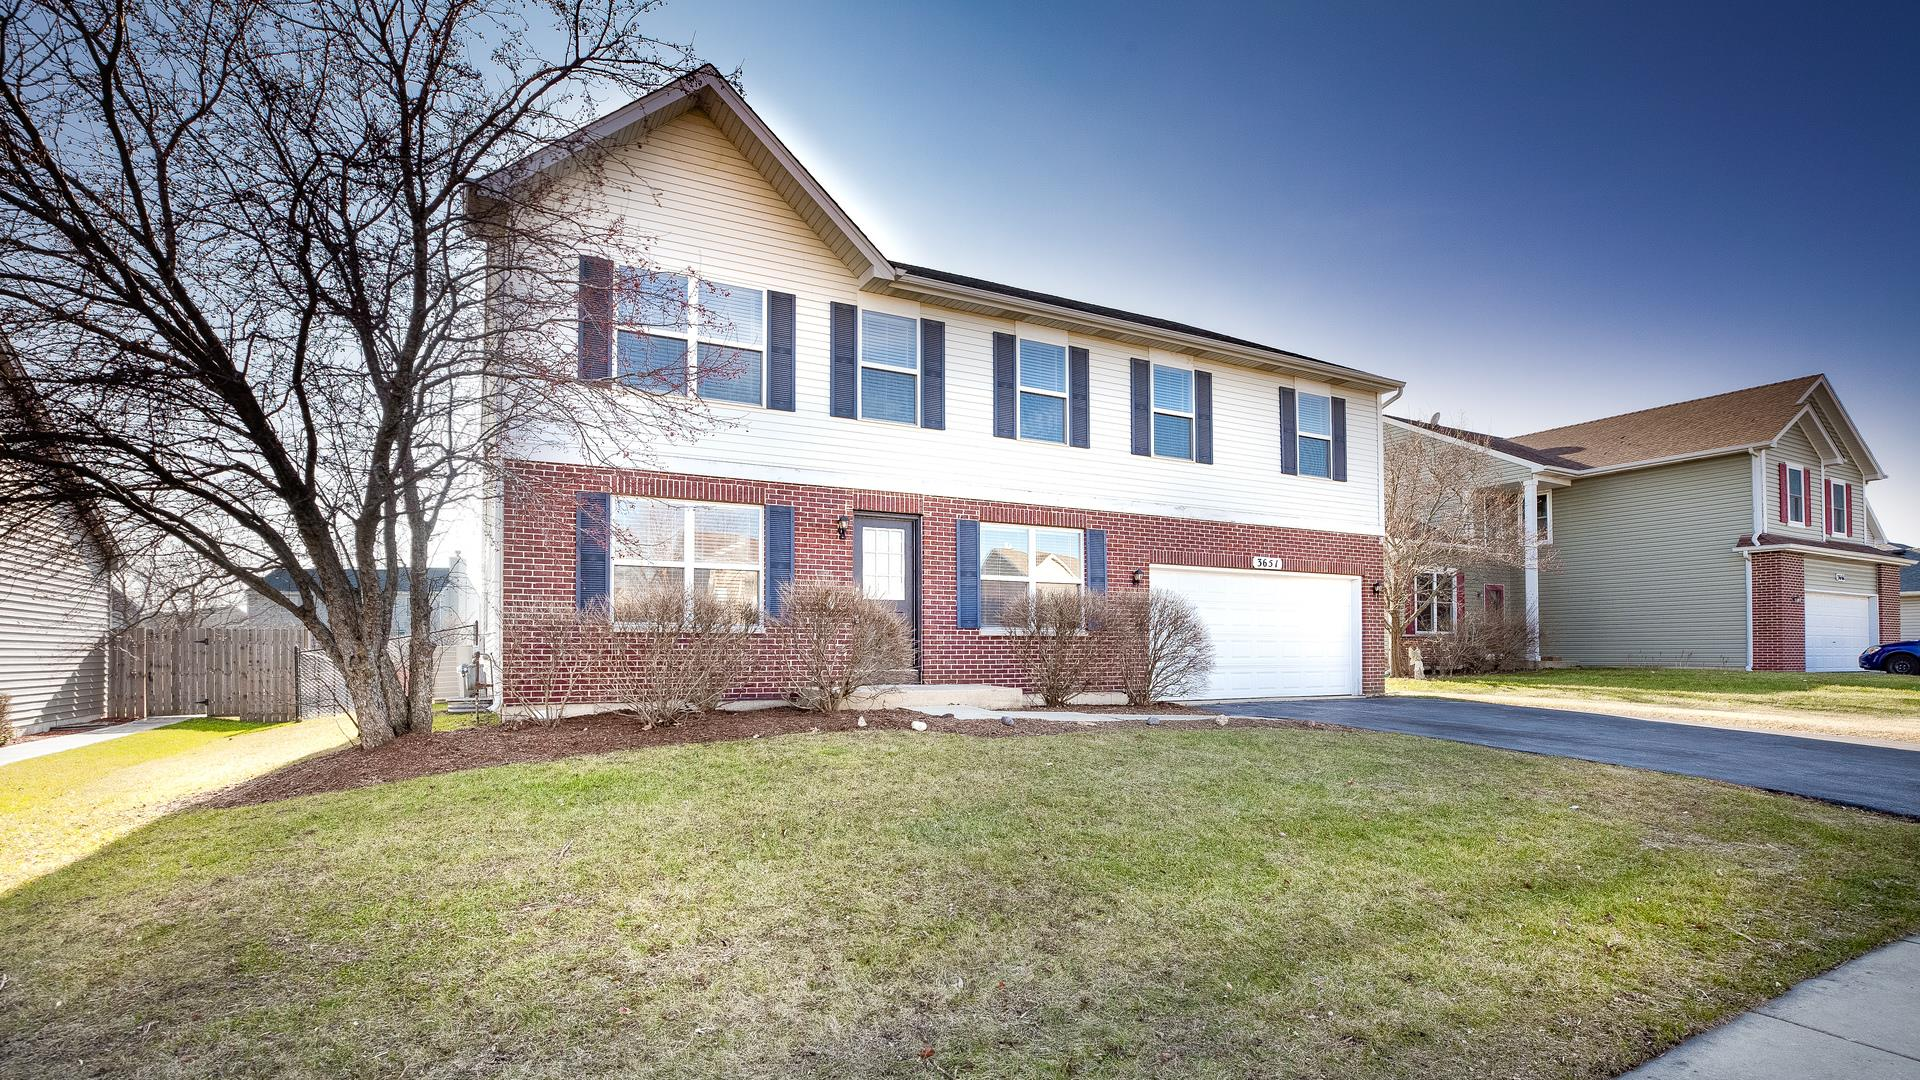 3651 CHADWICK Lane, Lake in the Hills, IL 60156 - #: 10593456